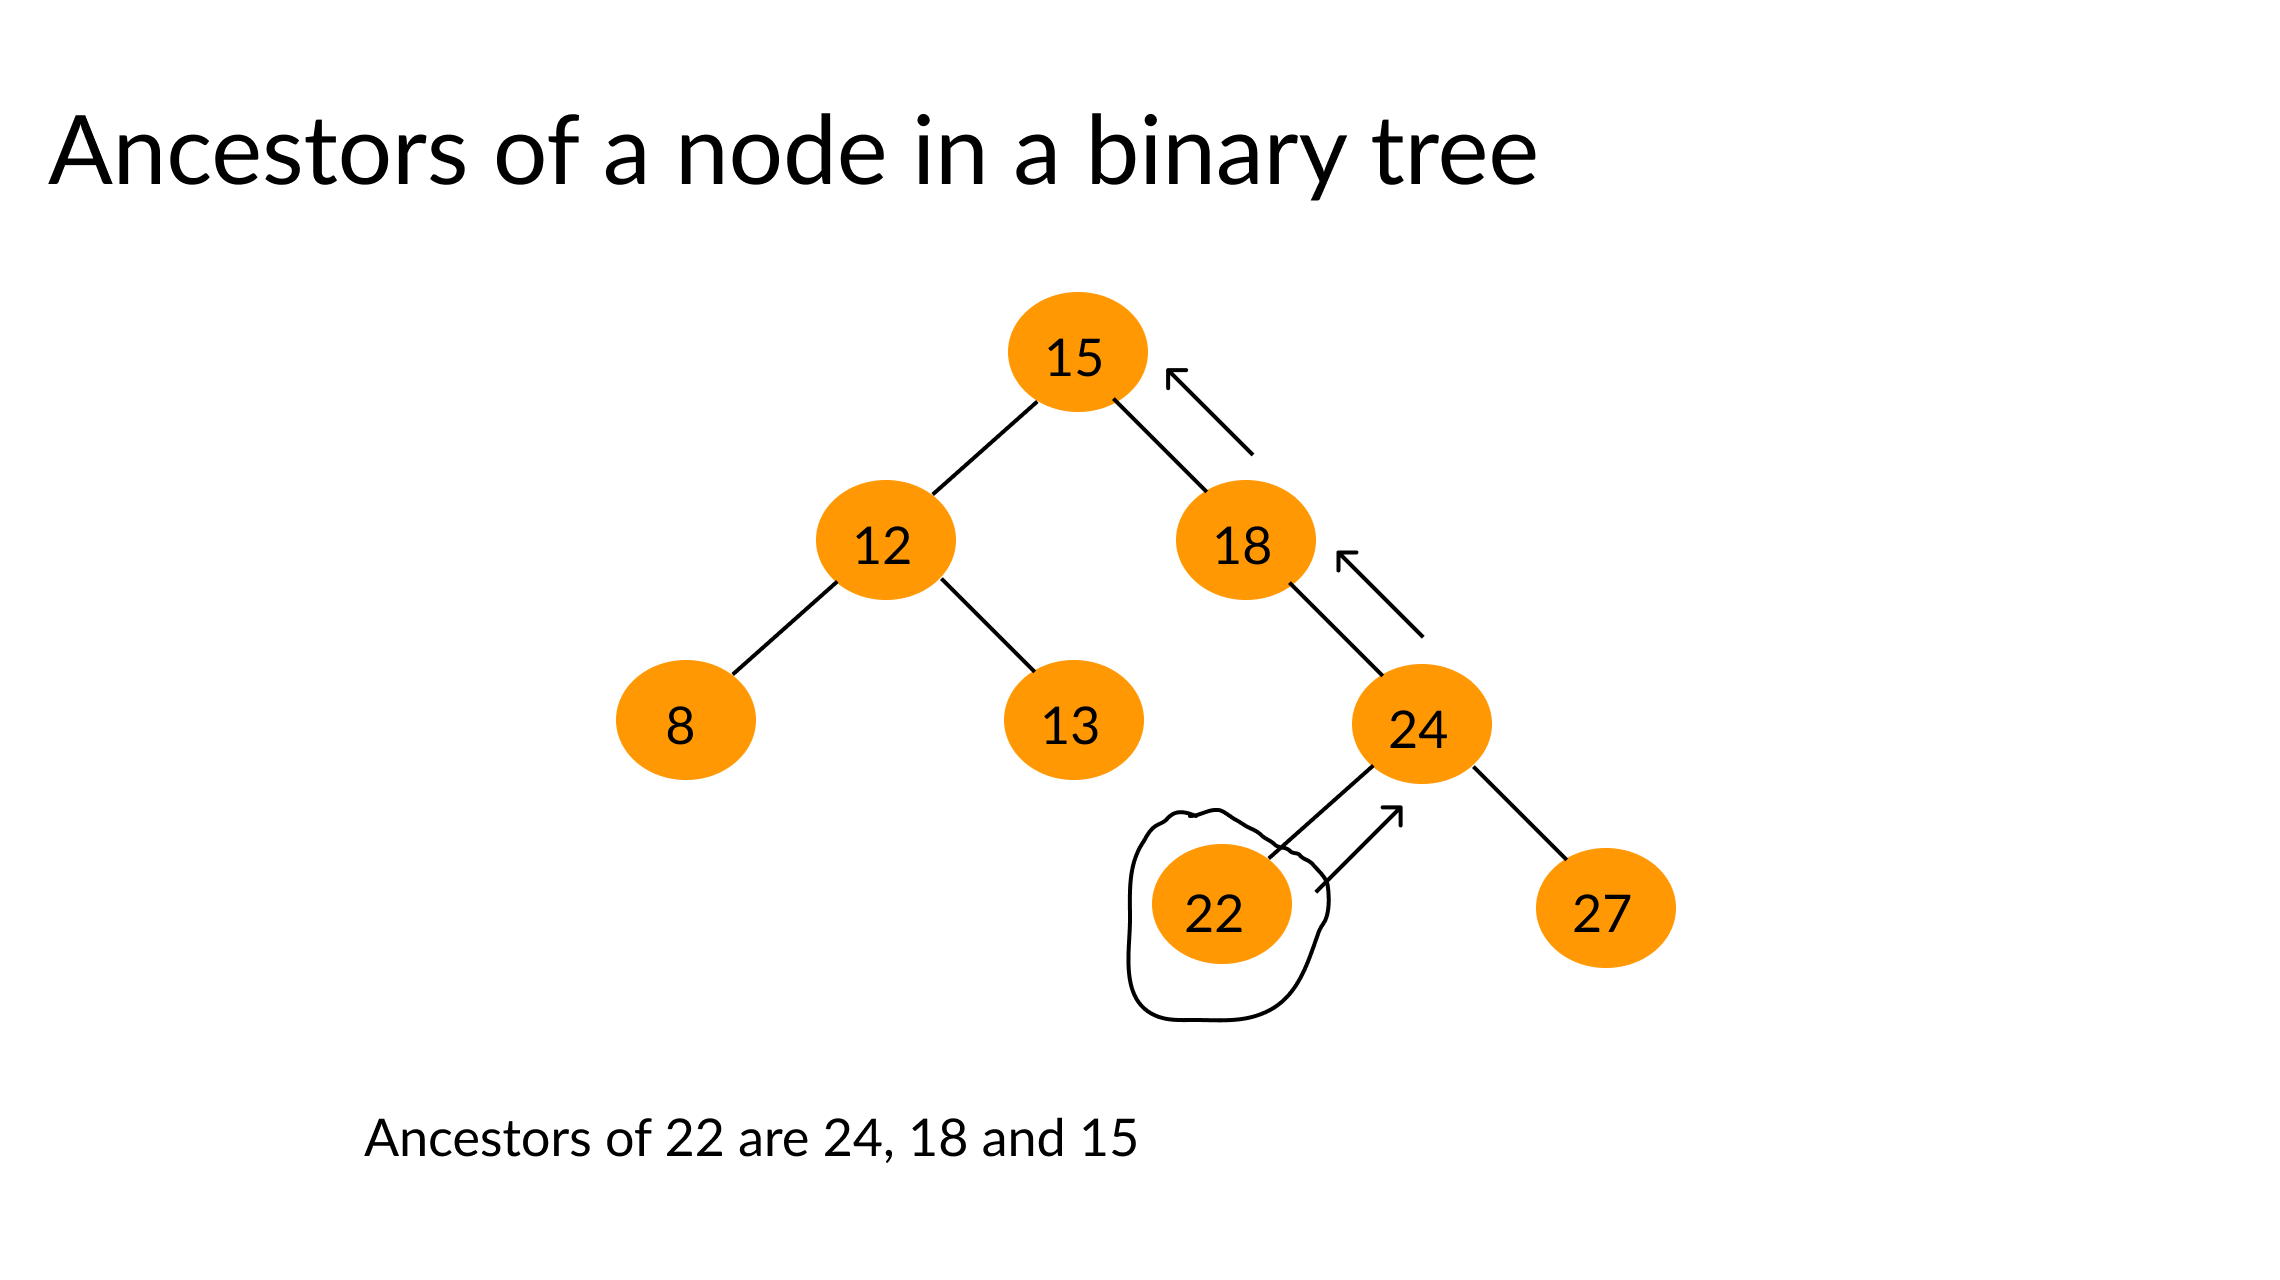 ancestors of a given node in a binary tree